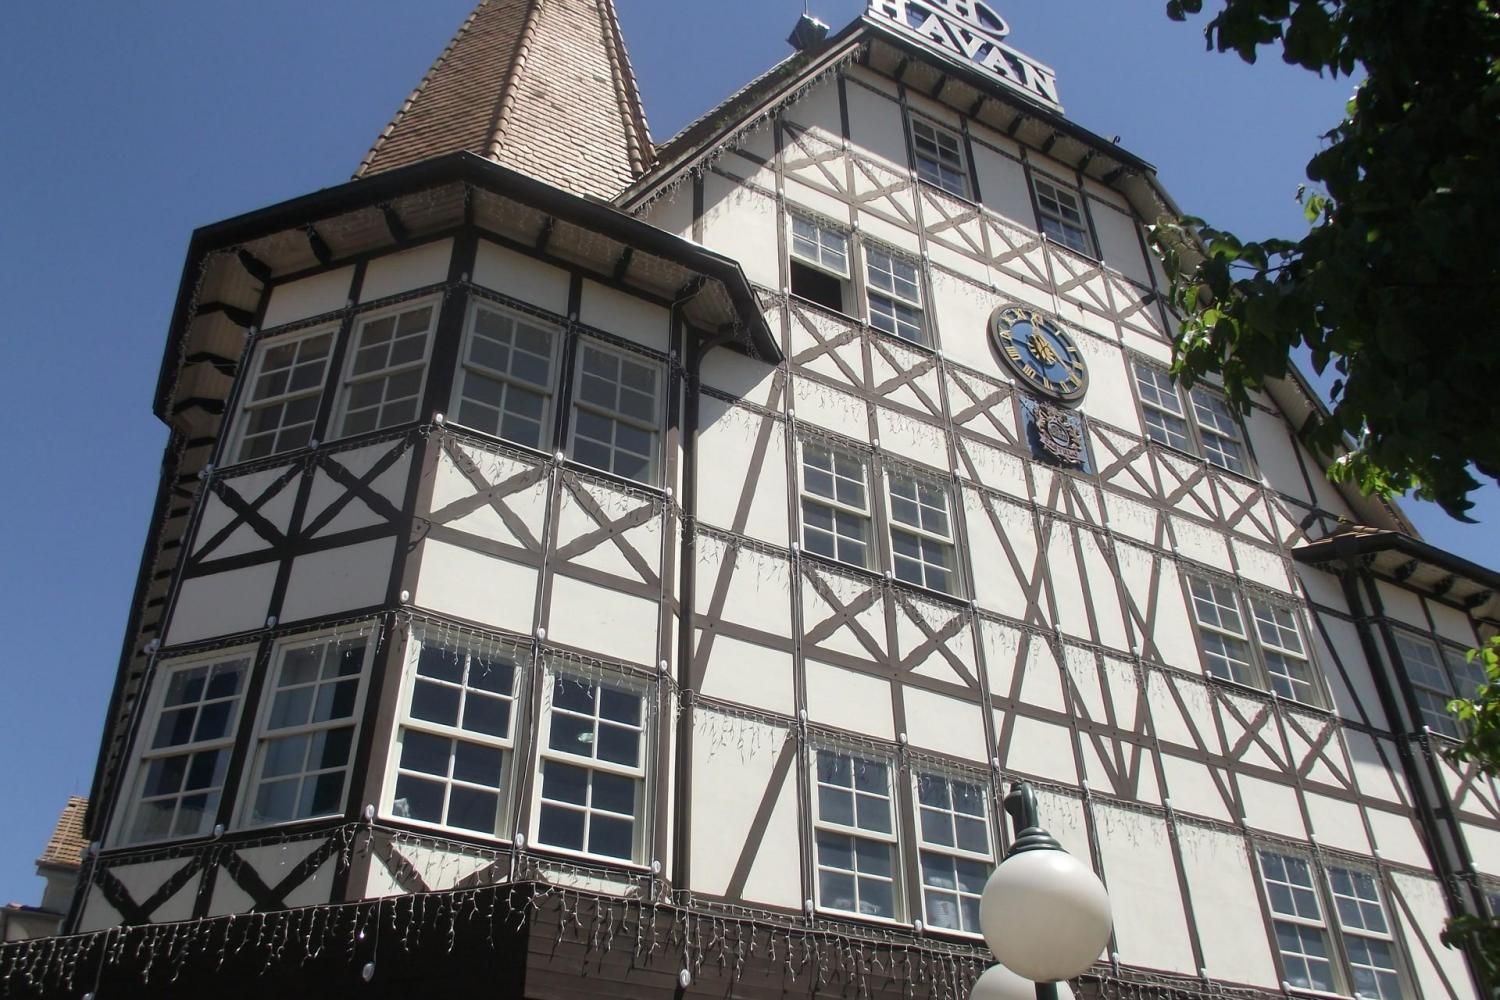 The german architecture is very charming